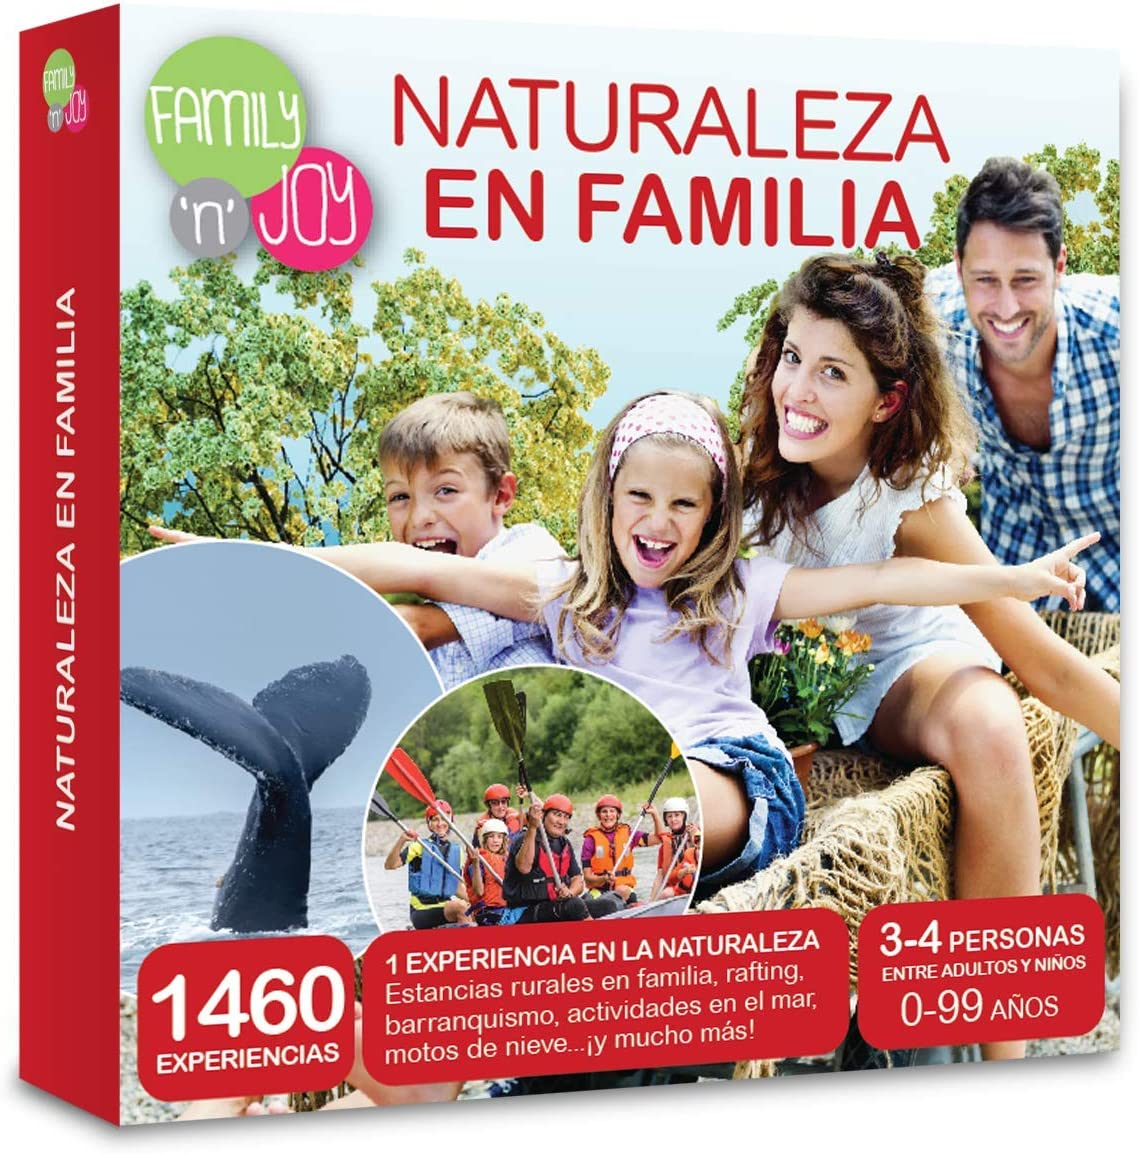 family n joy naturaleza en familia